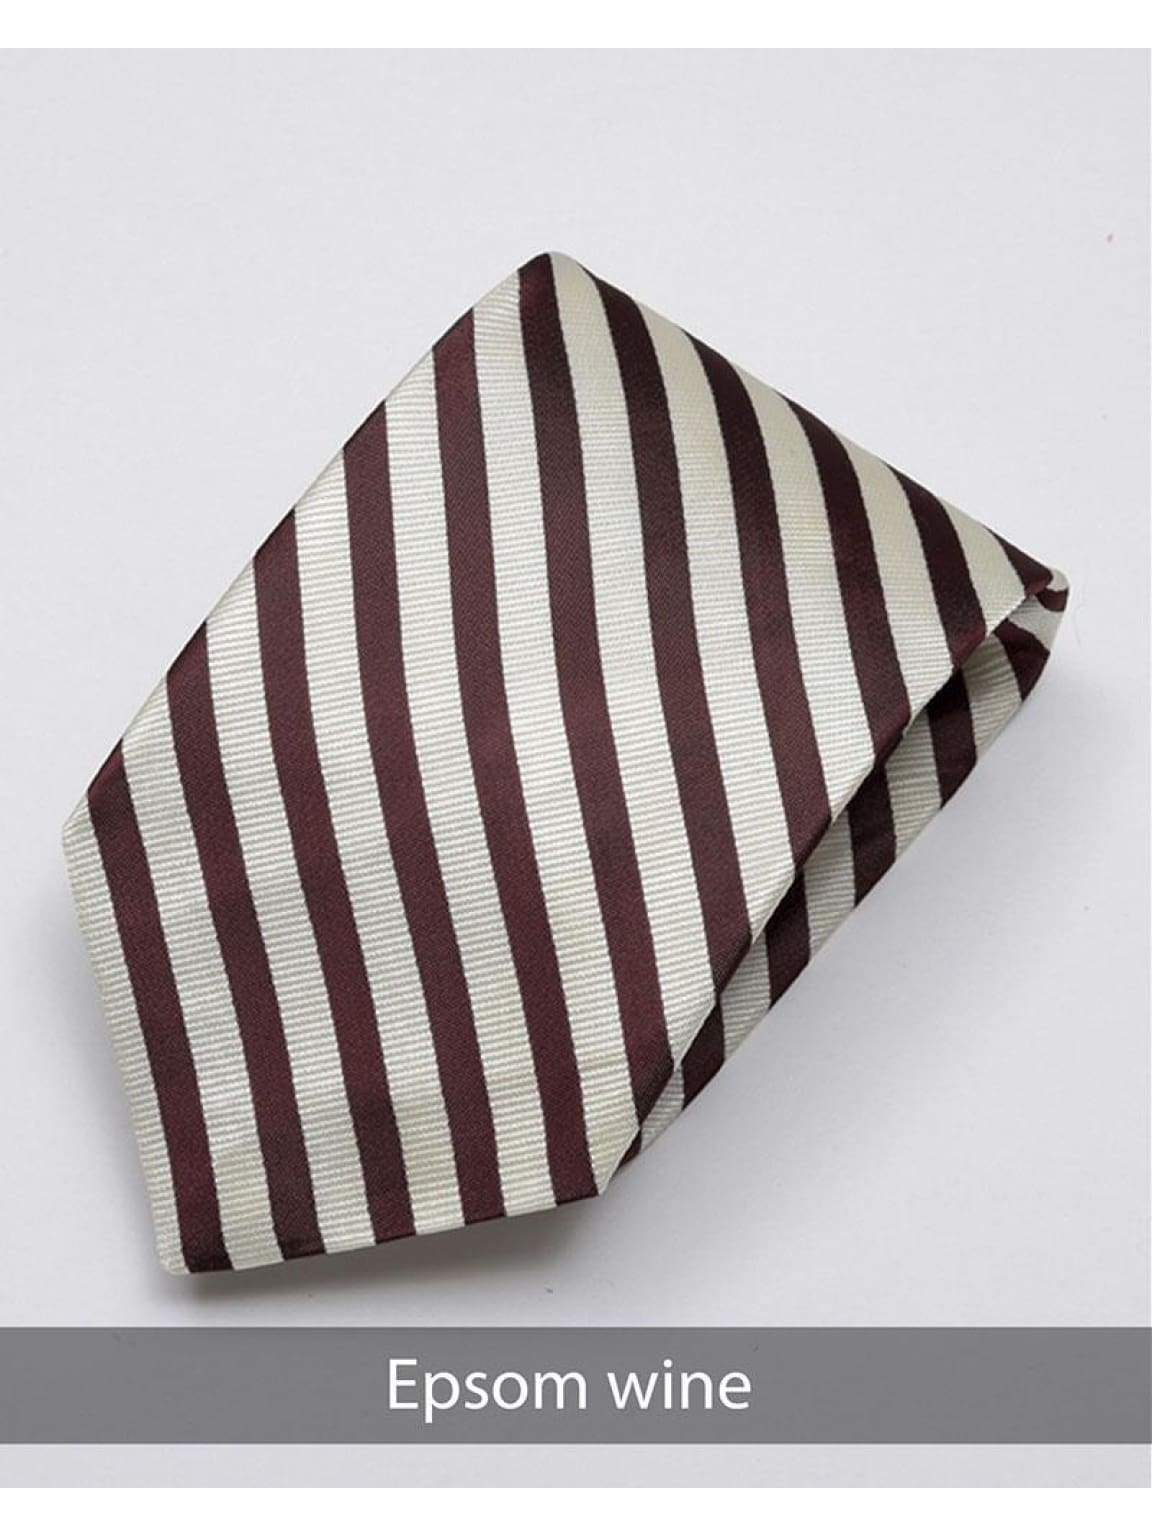 Heirloom Epsom Mens Wine Stripped Tie - Accessories